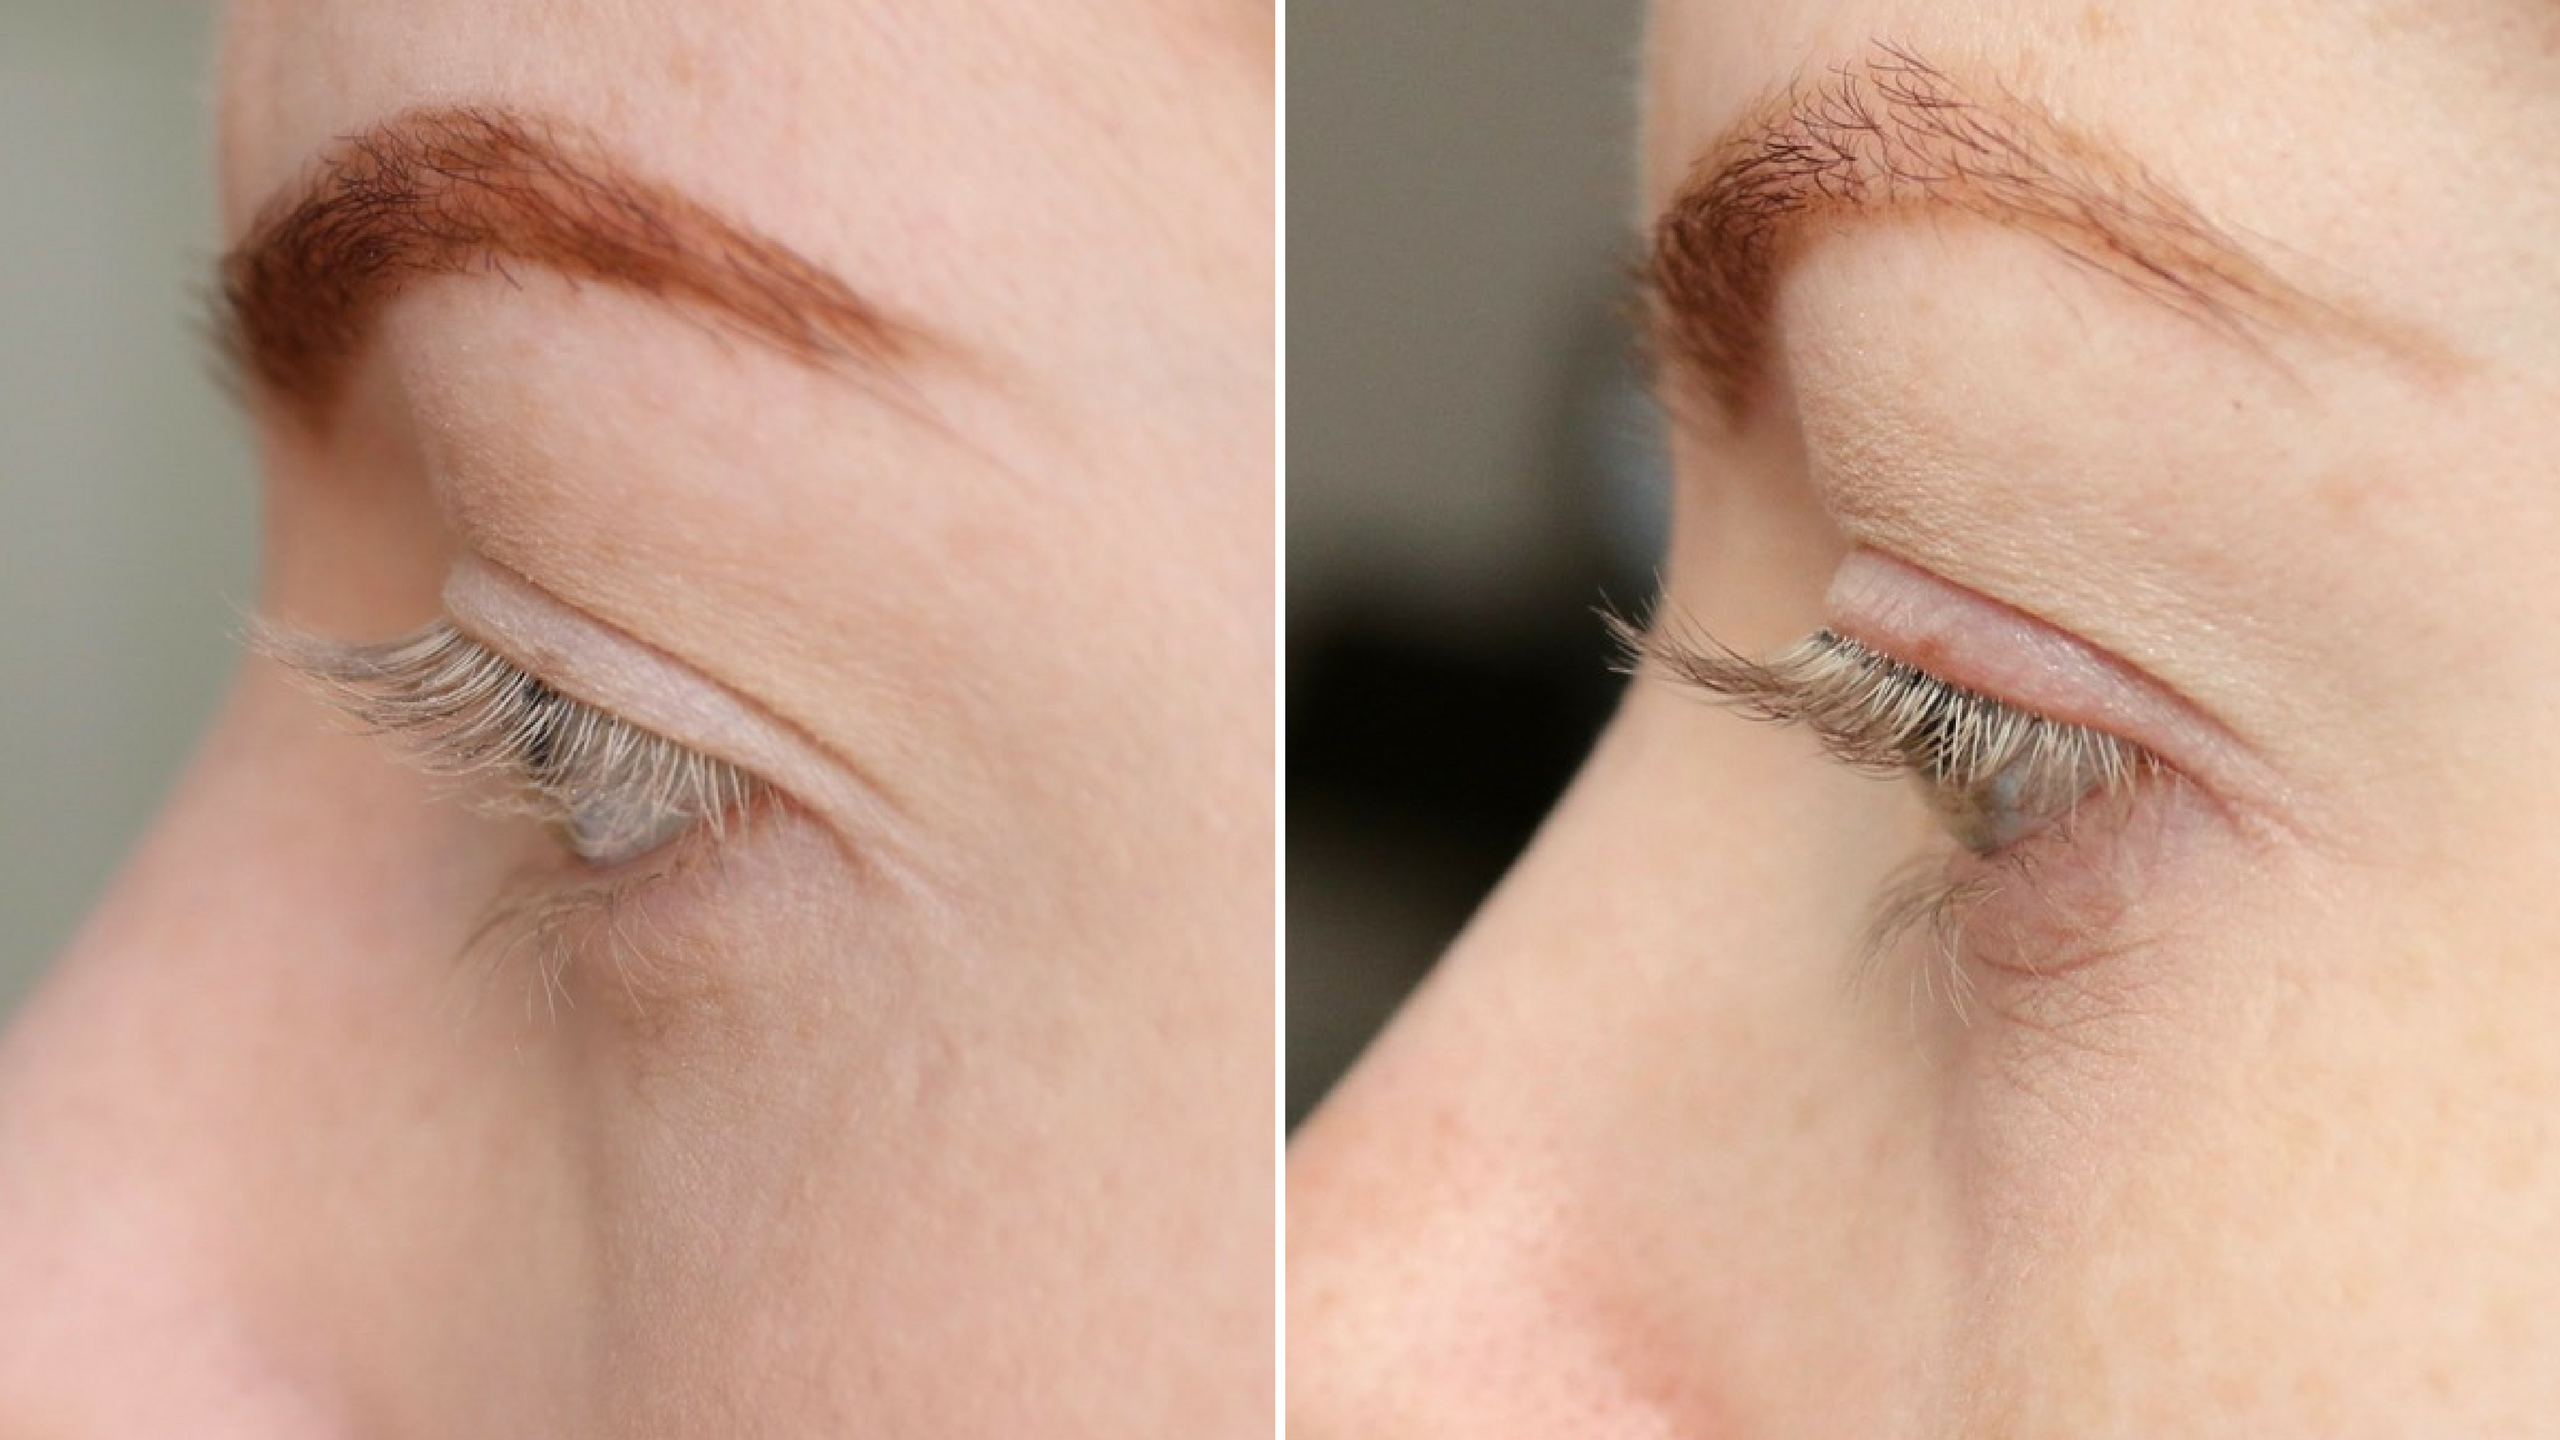 Kruidvat wimperserum before and after